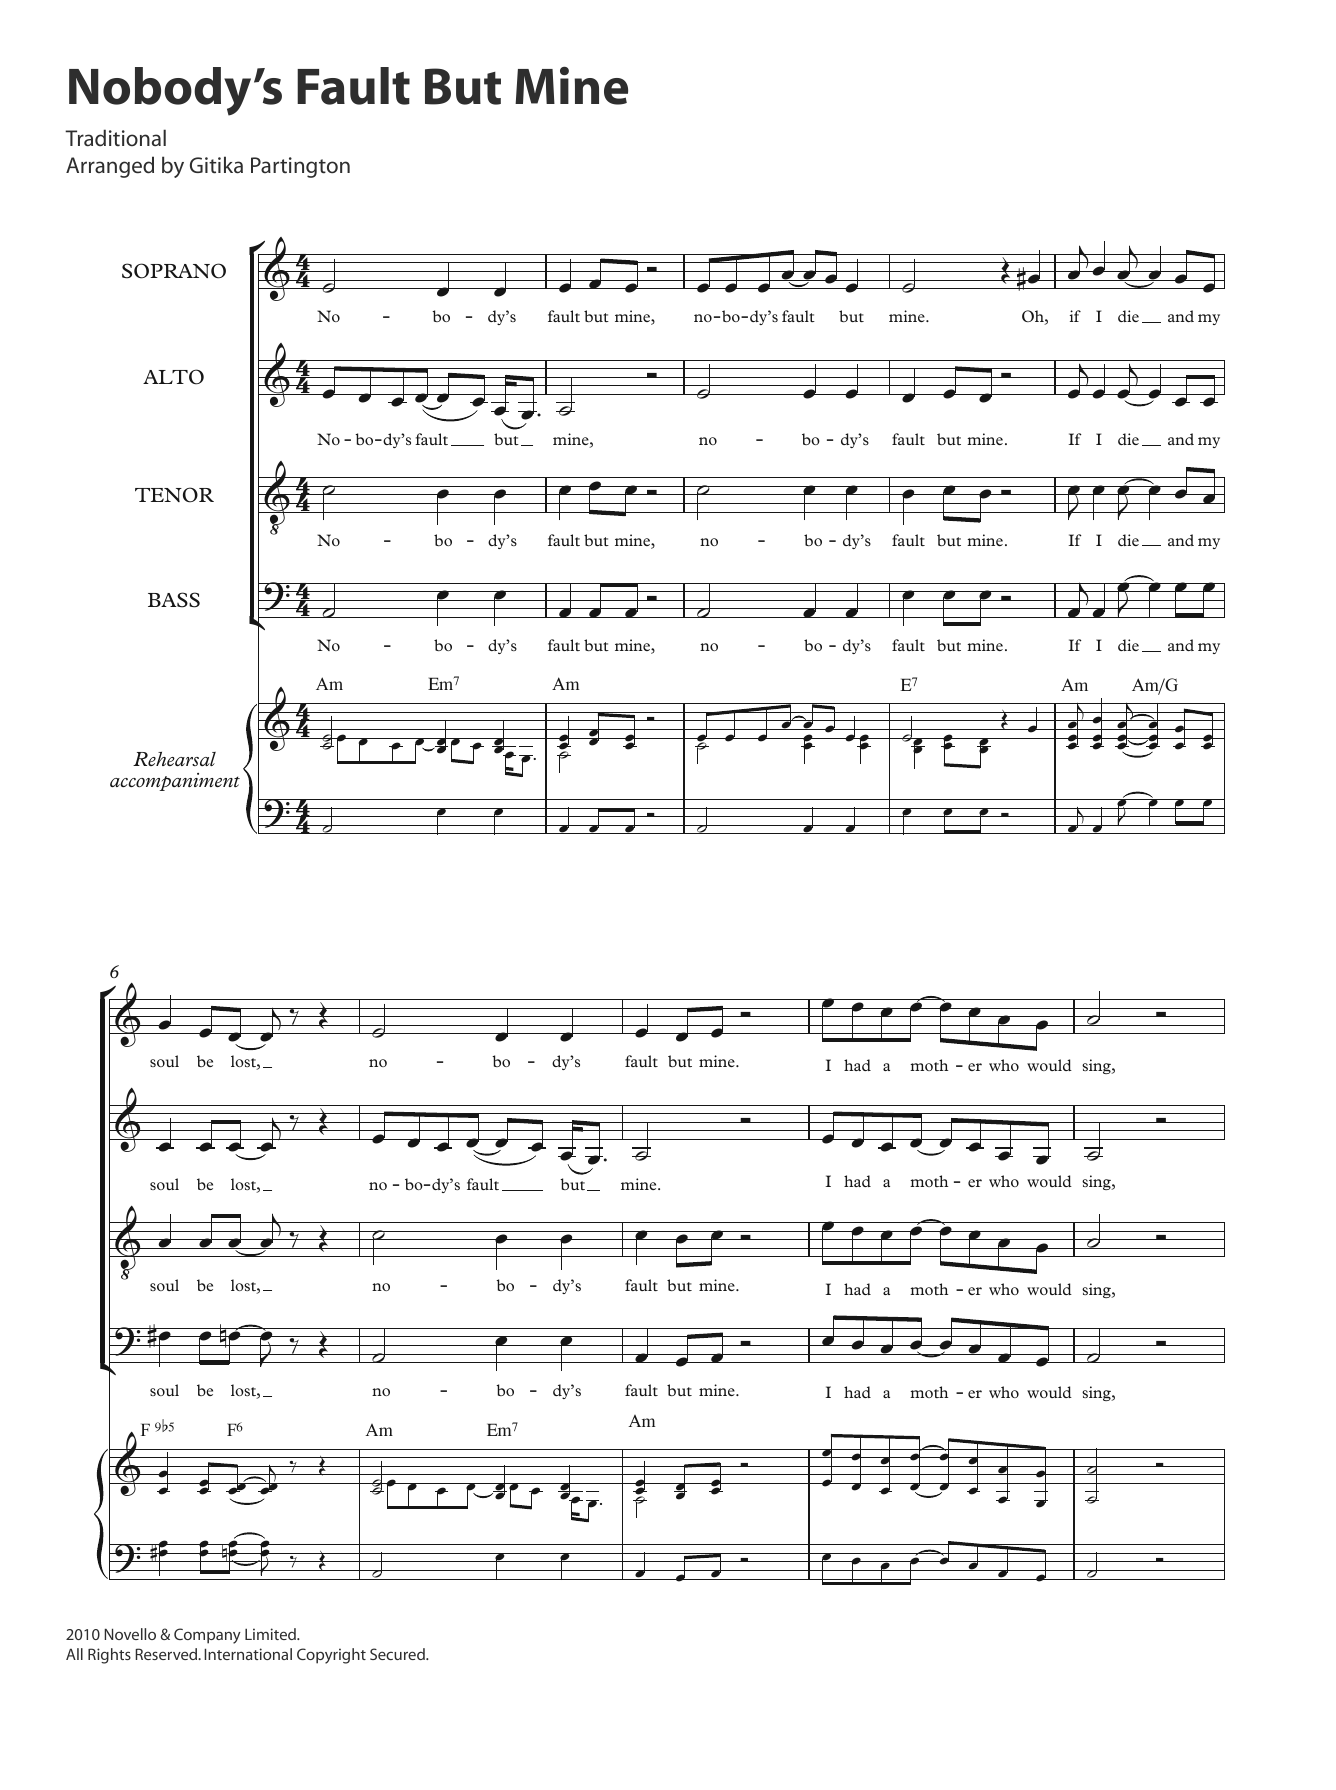 Nobody's Fault But Mine (arr. Gitika Partington) Sheet Music